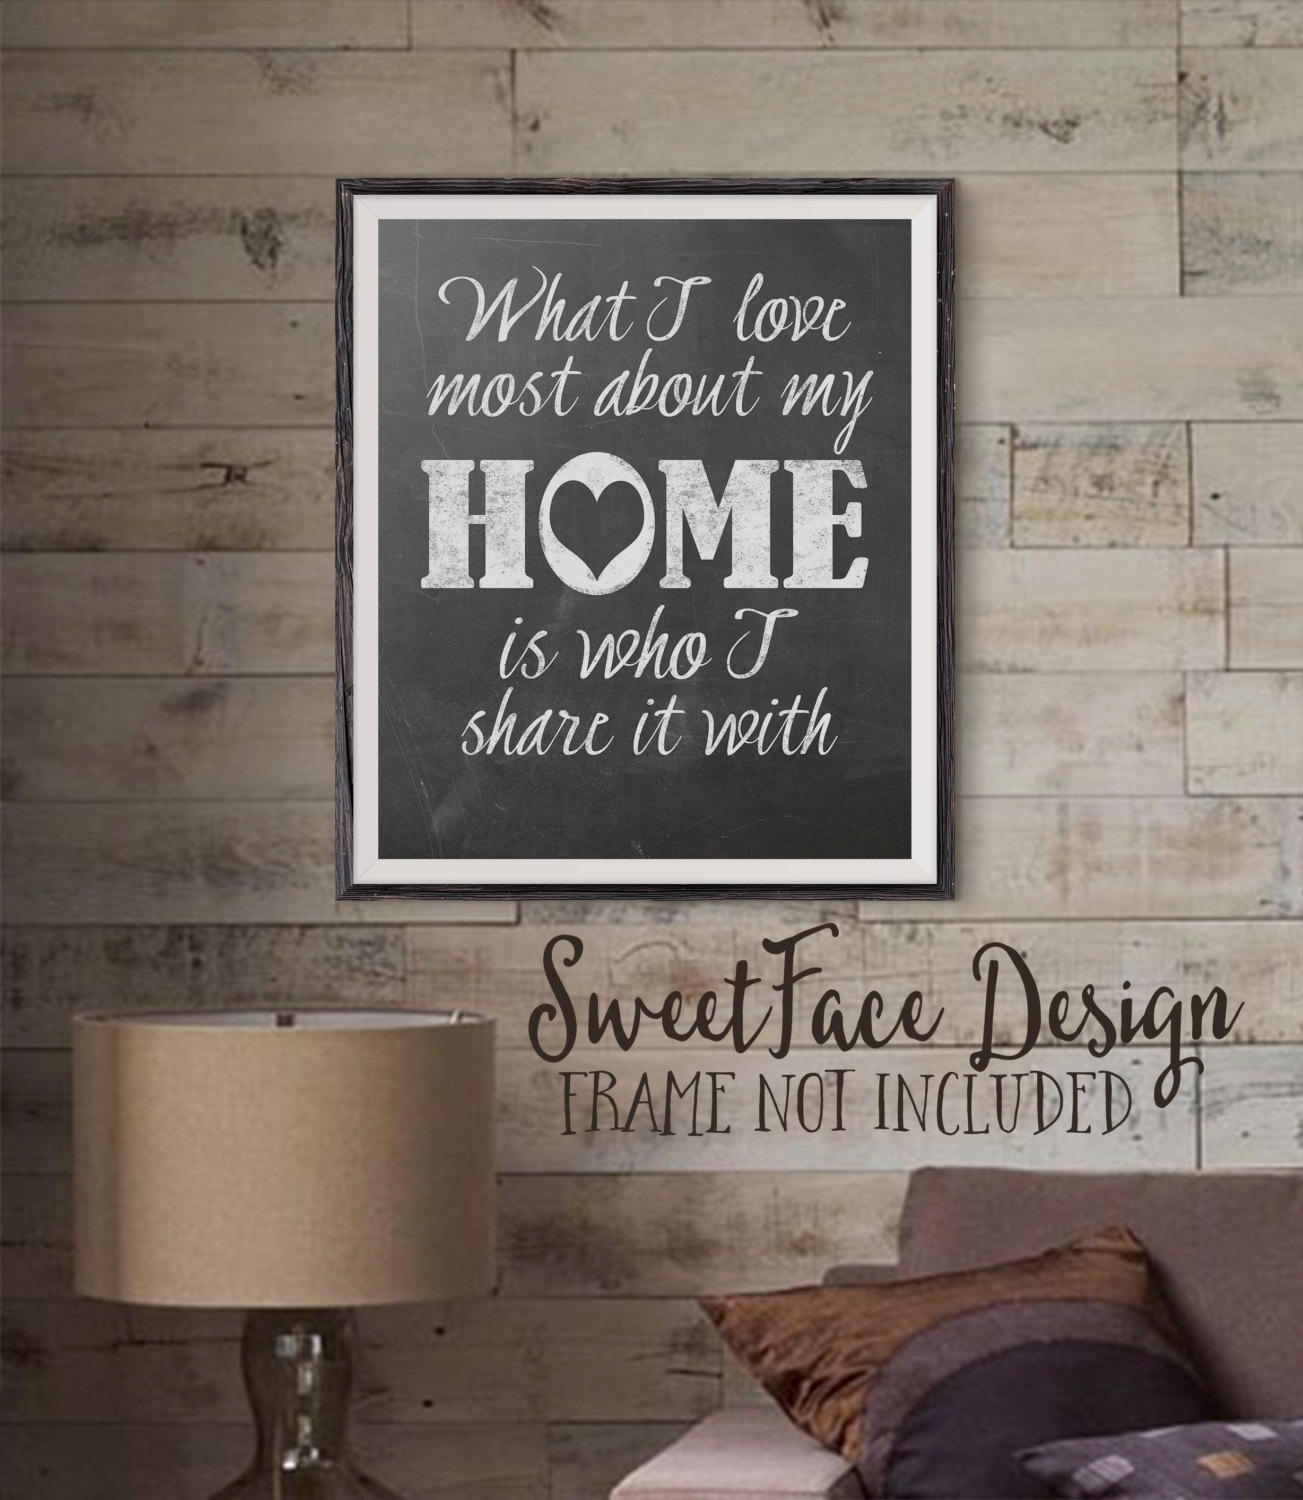 Wall Art Design Ideas: Popular Items Chalkboard Wall Art Square In Most Recently Released Fabric Square Wall Art (View 11 of 15)